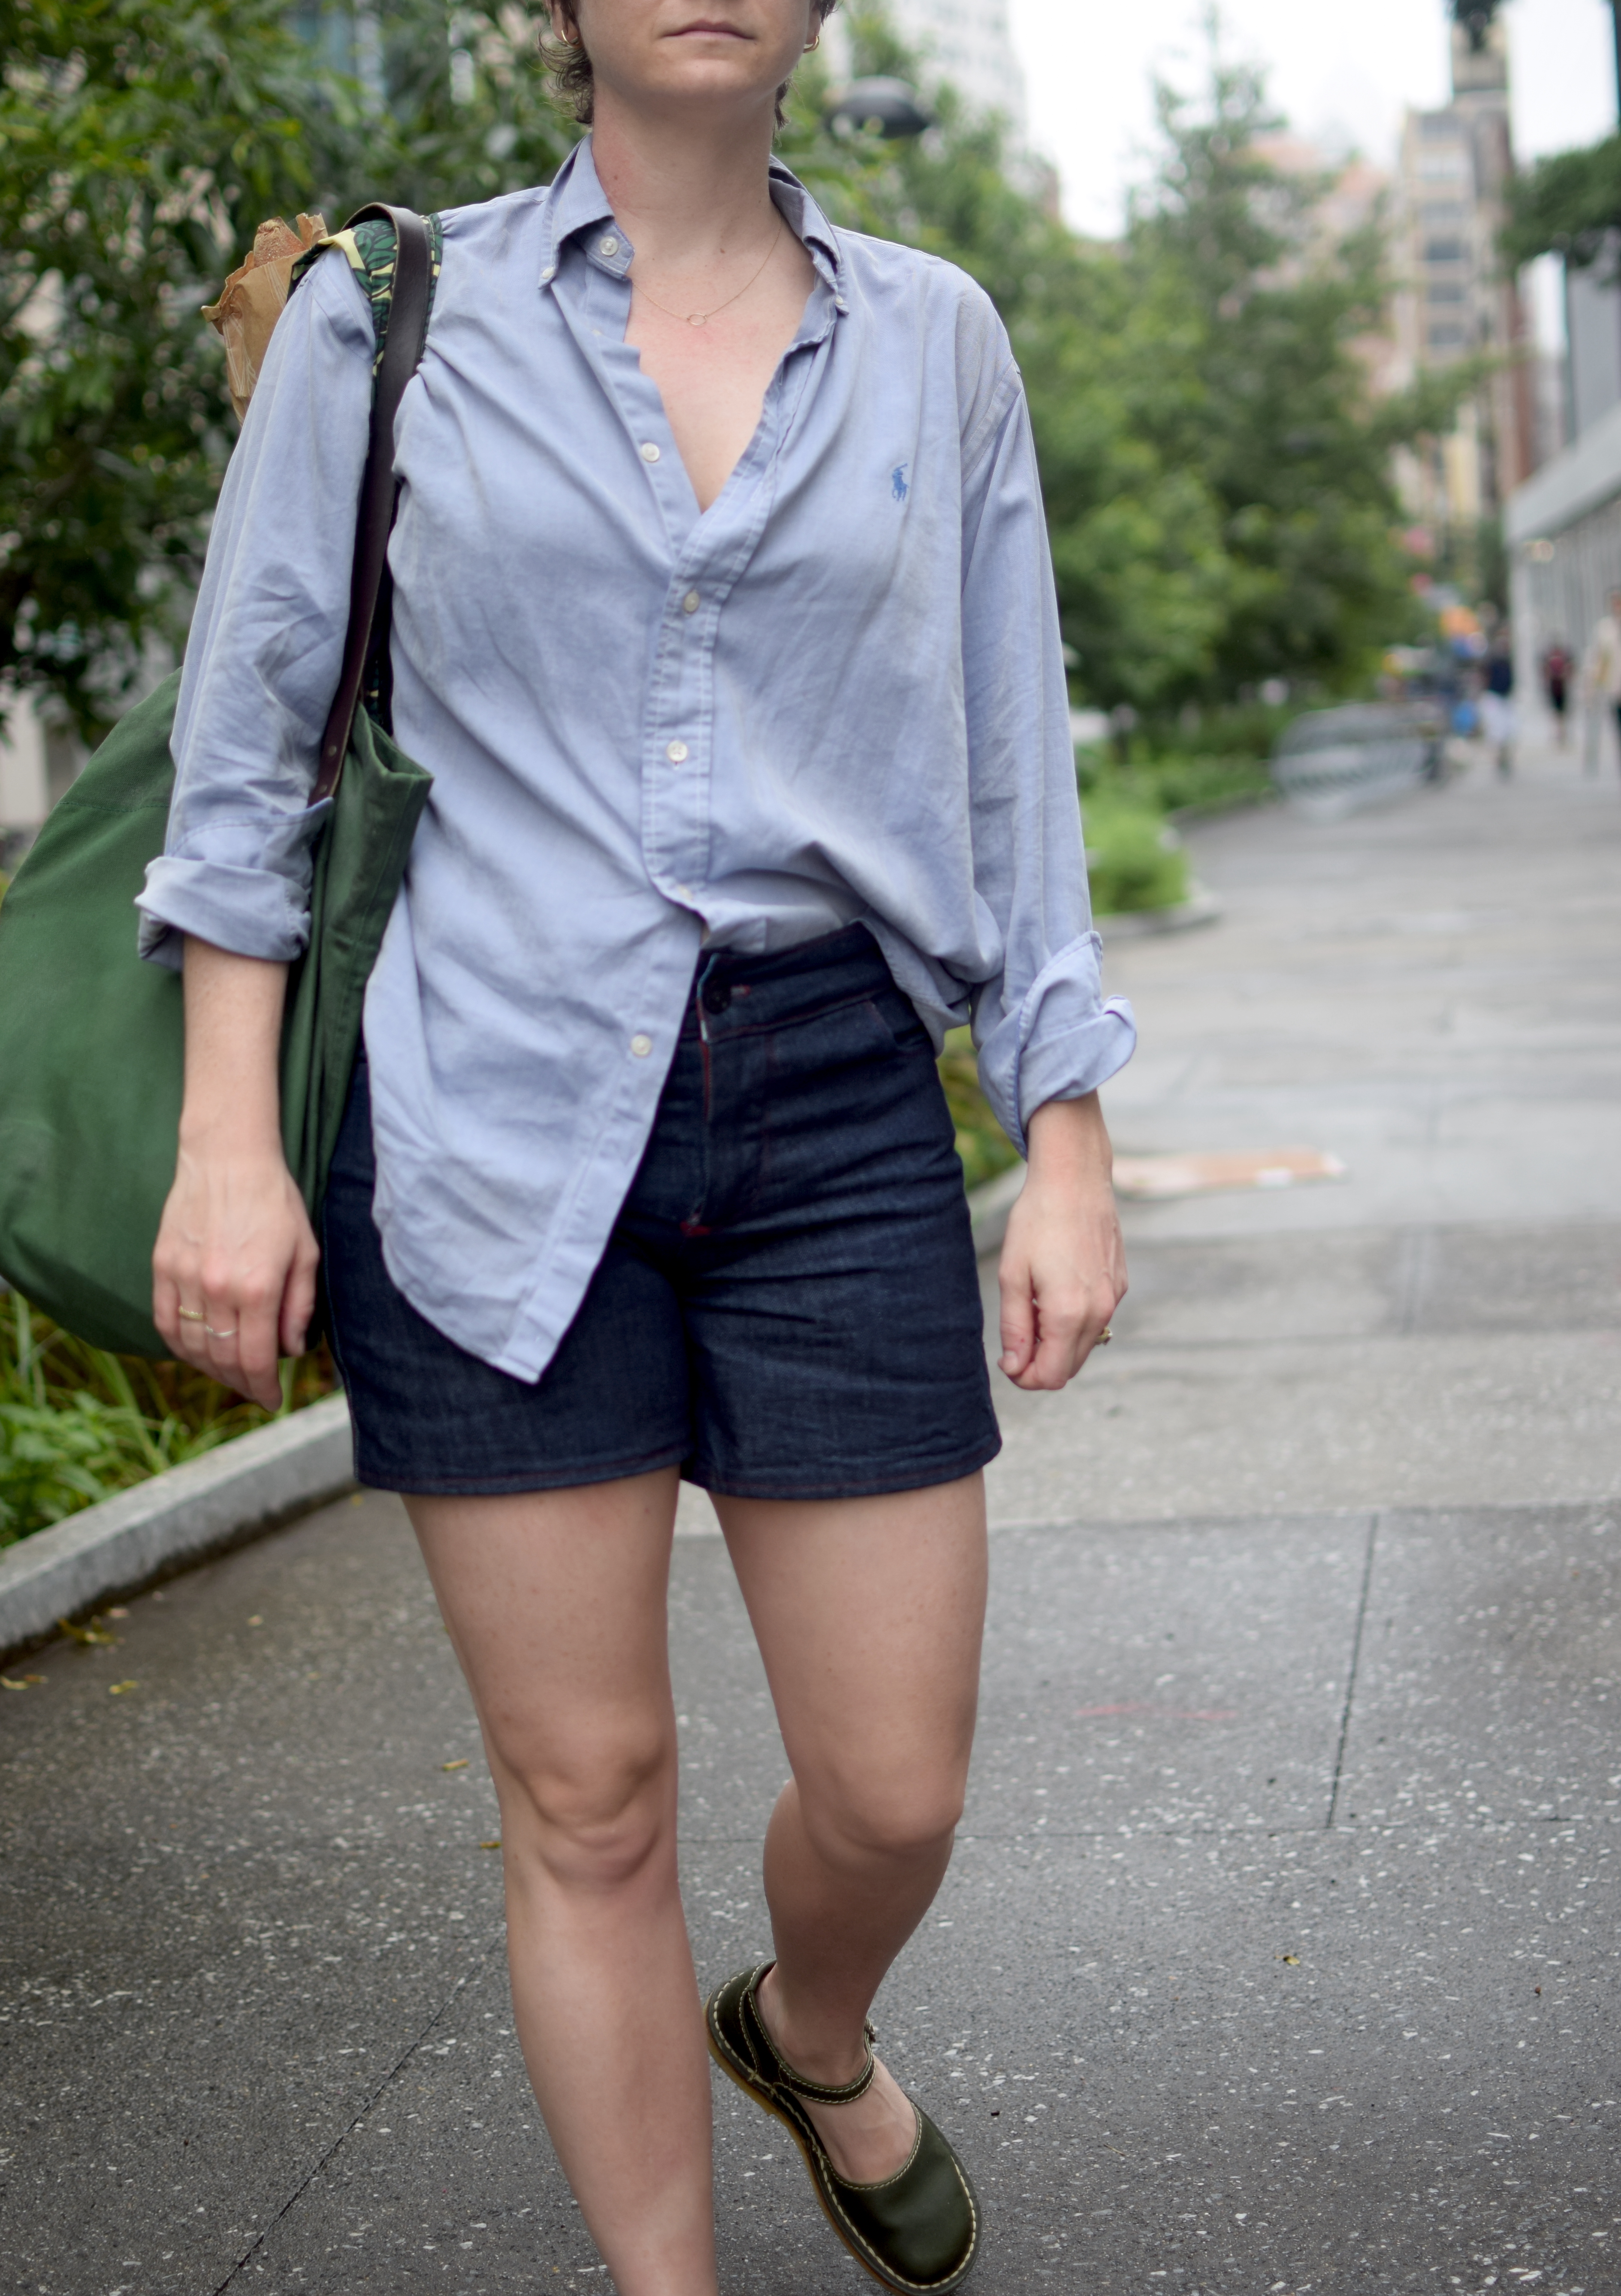 a woman poses, wearing a half-tucked button down and homemade jean shorts.